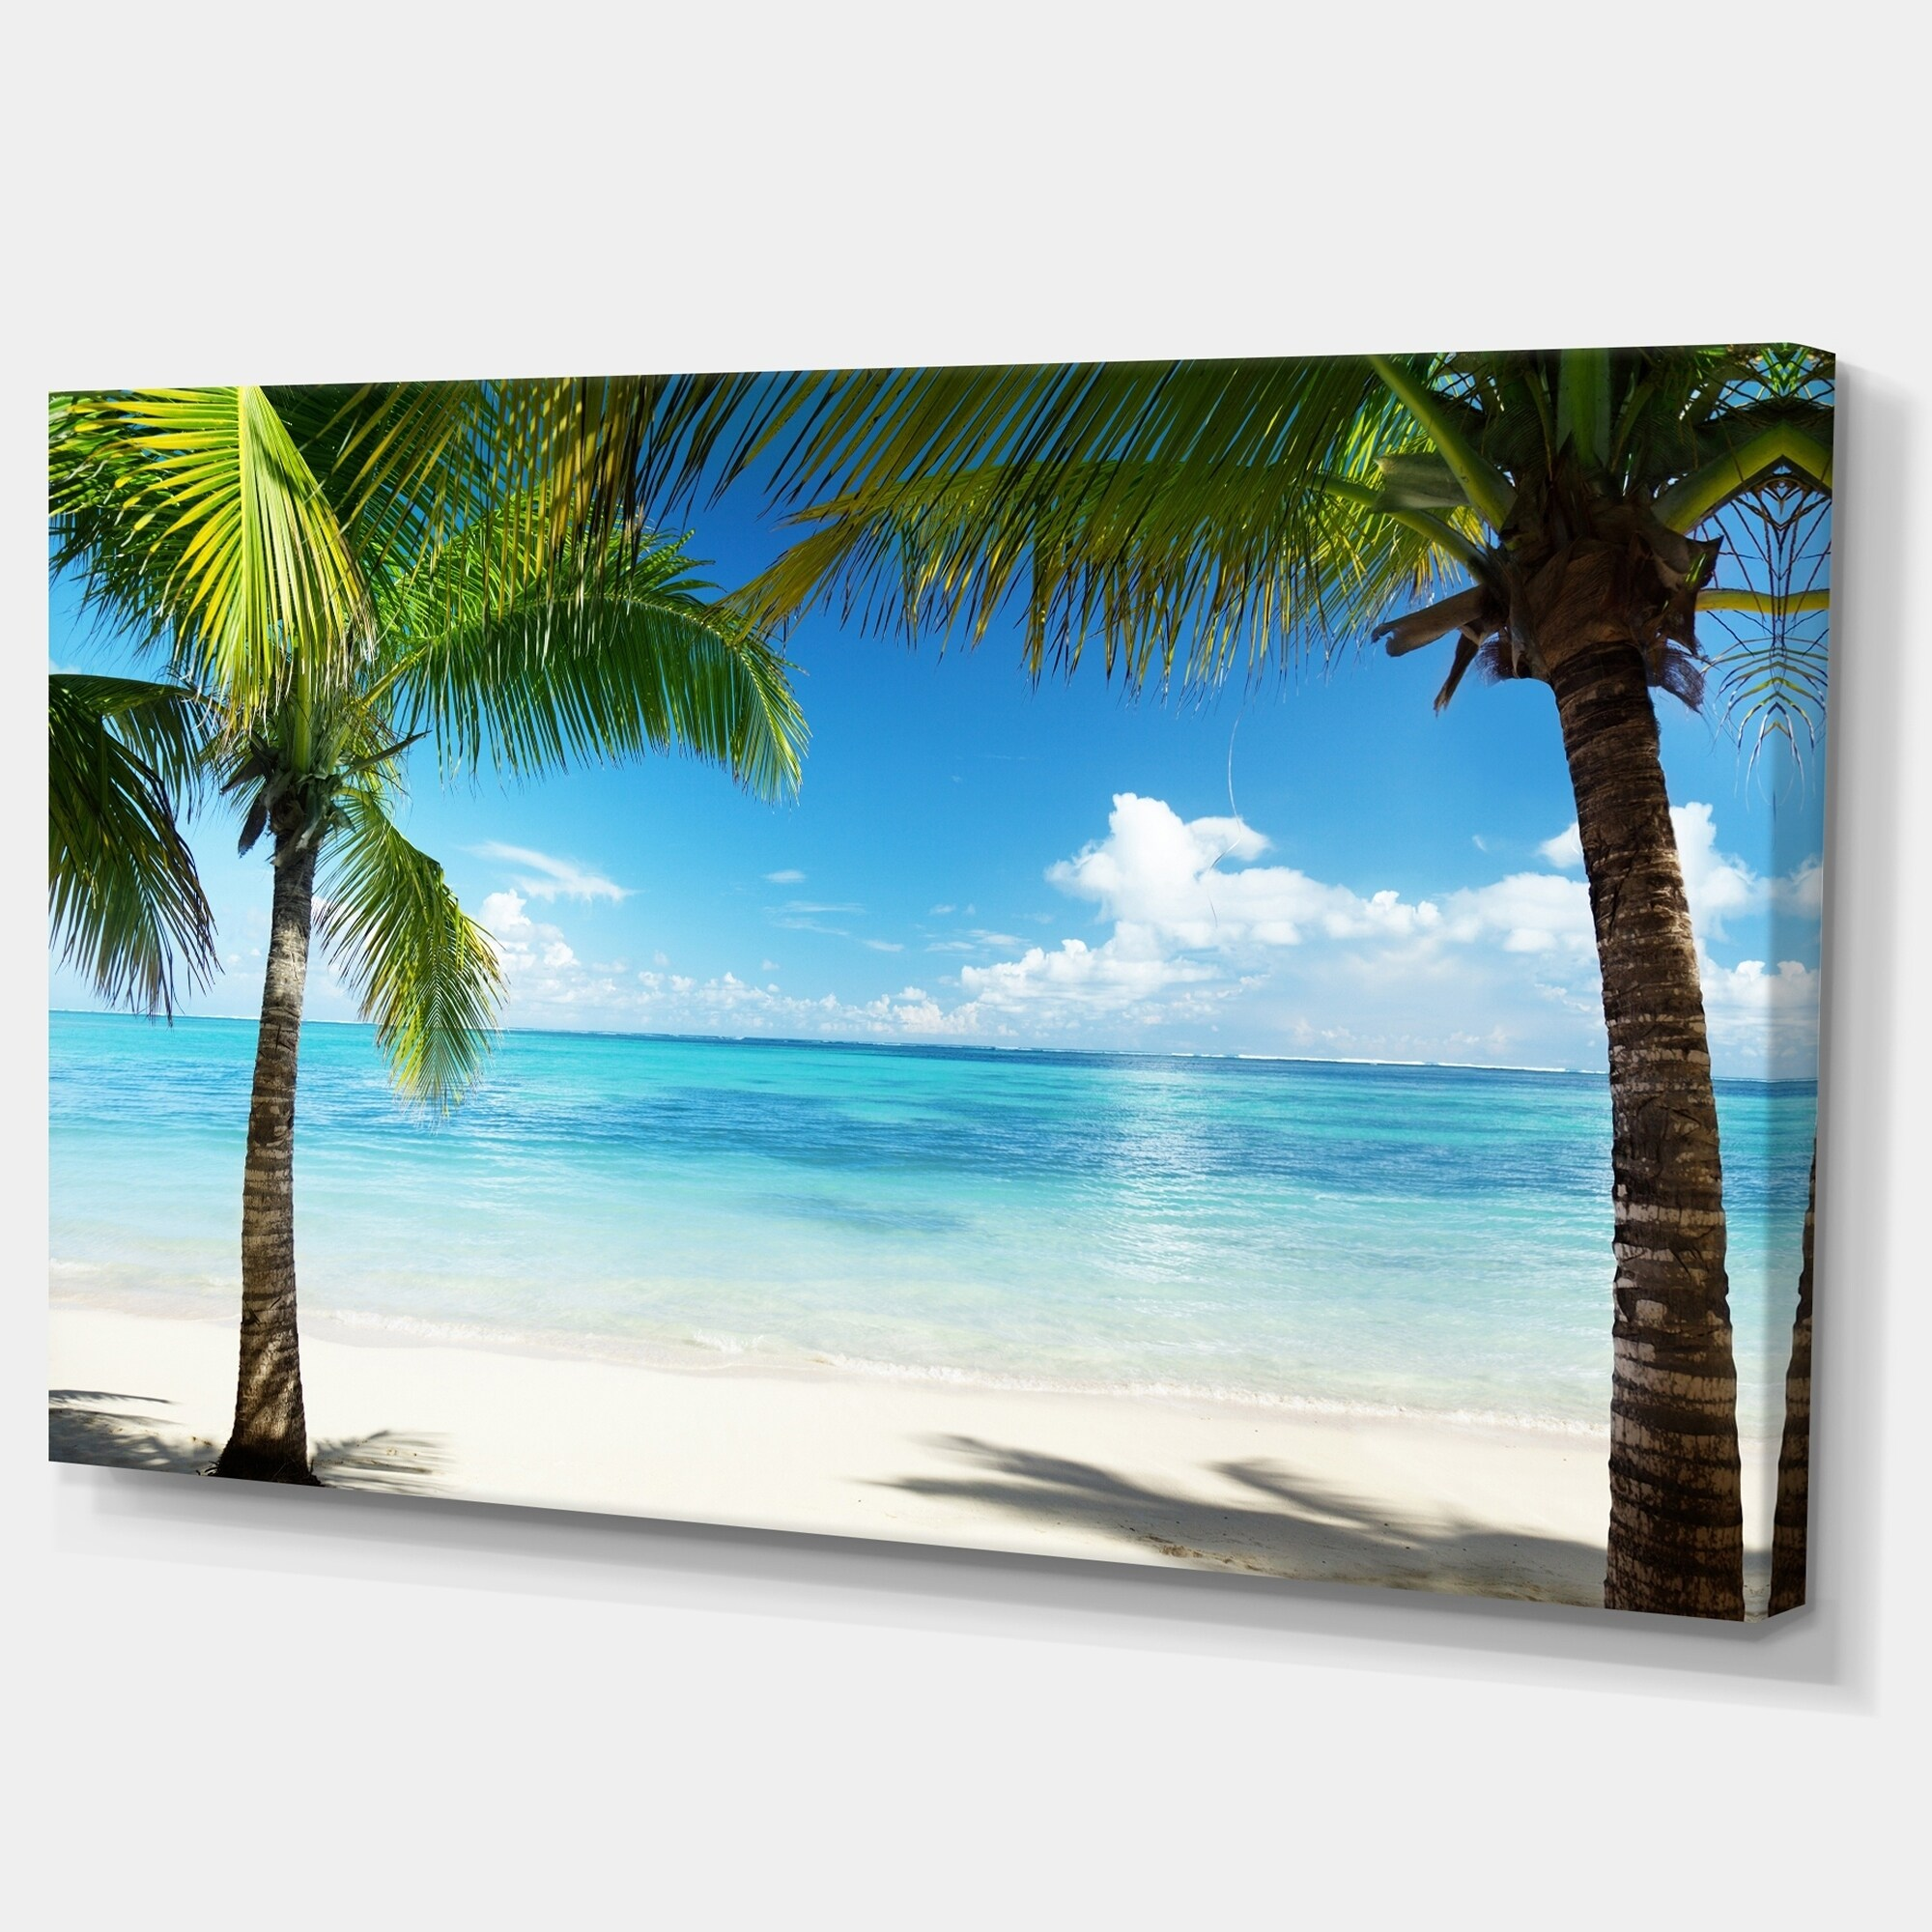 Designart Palm Trees And Sea Landscape Photo Canvas Wall Art Overstock 11614495